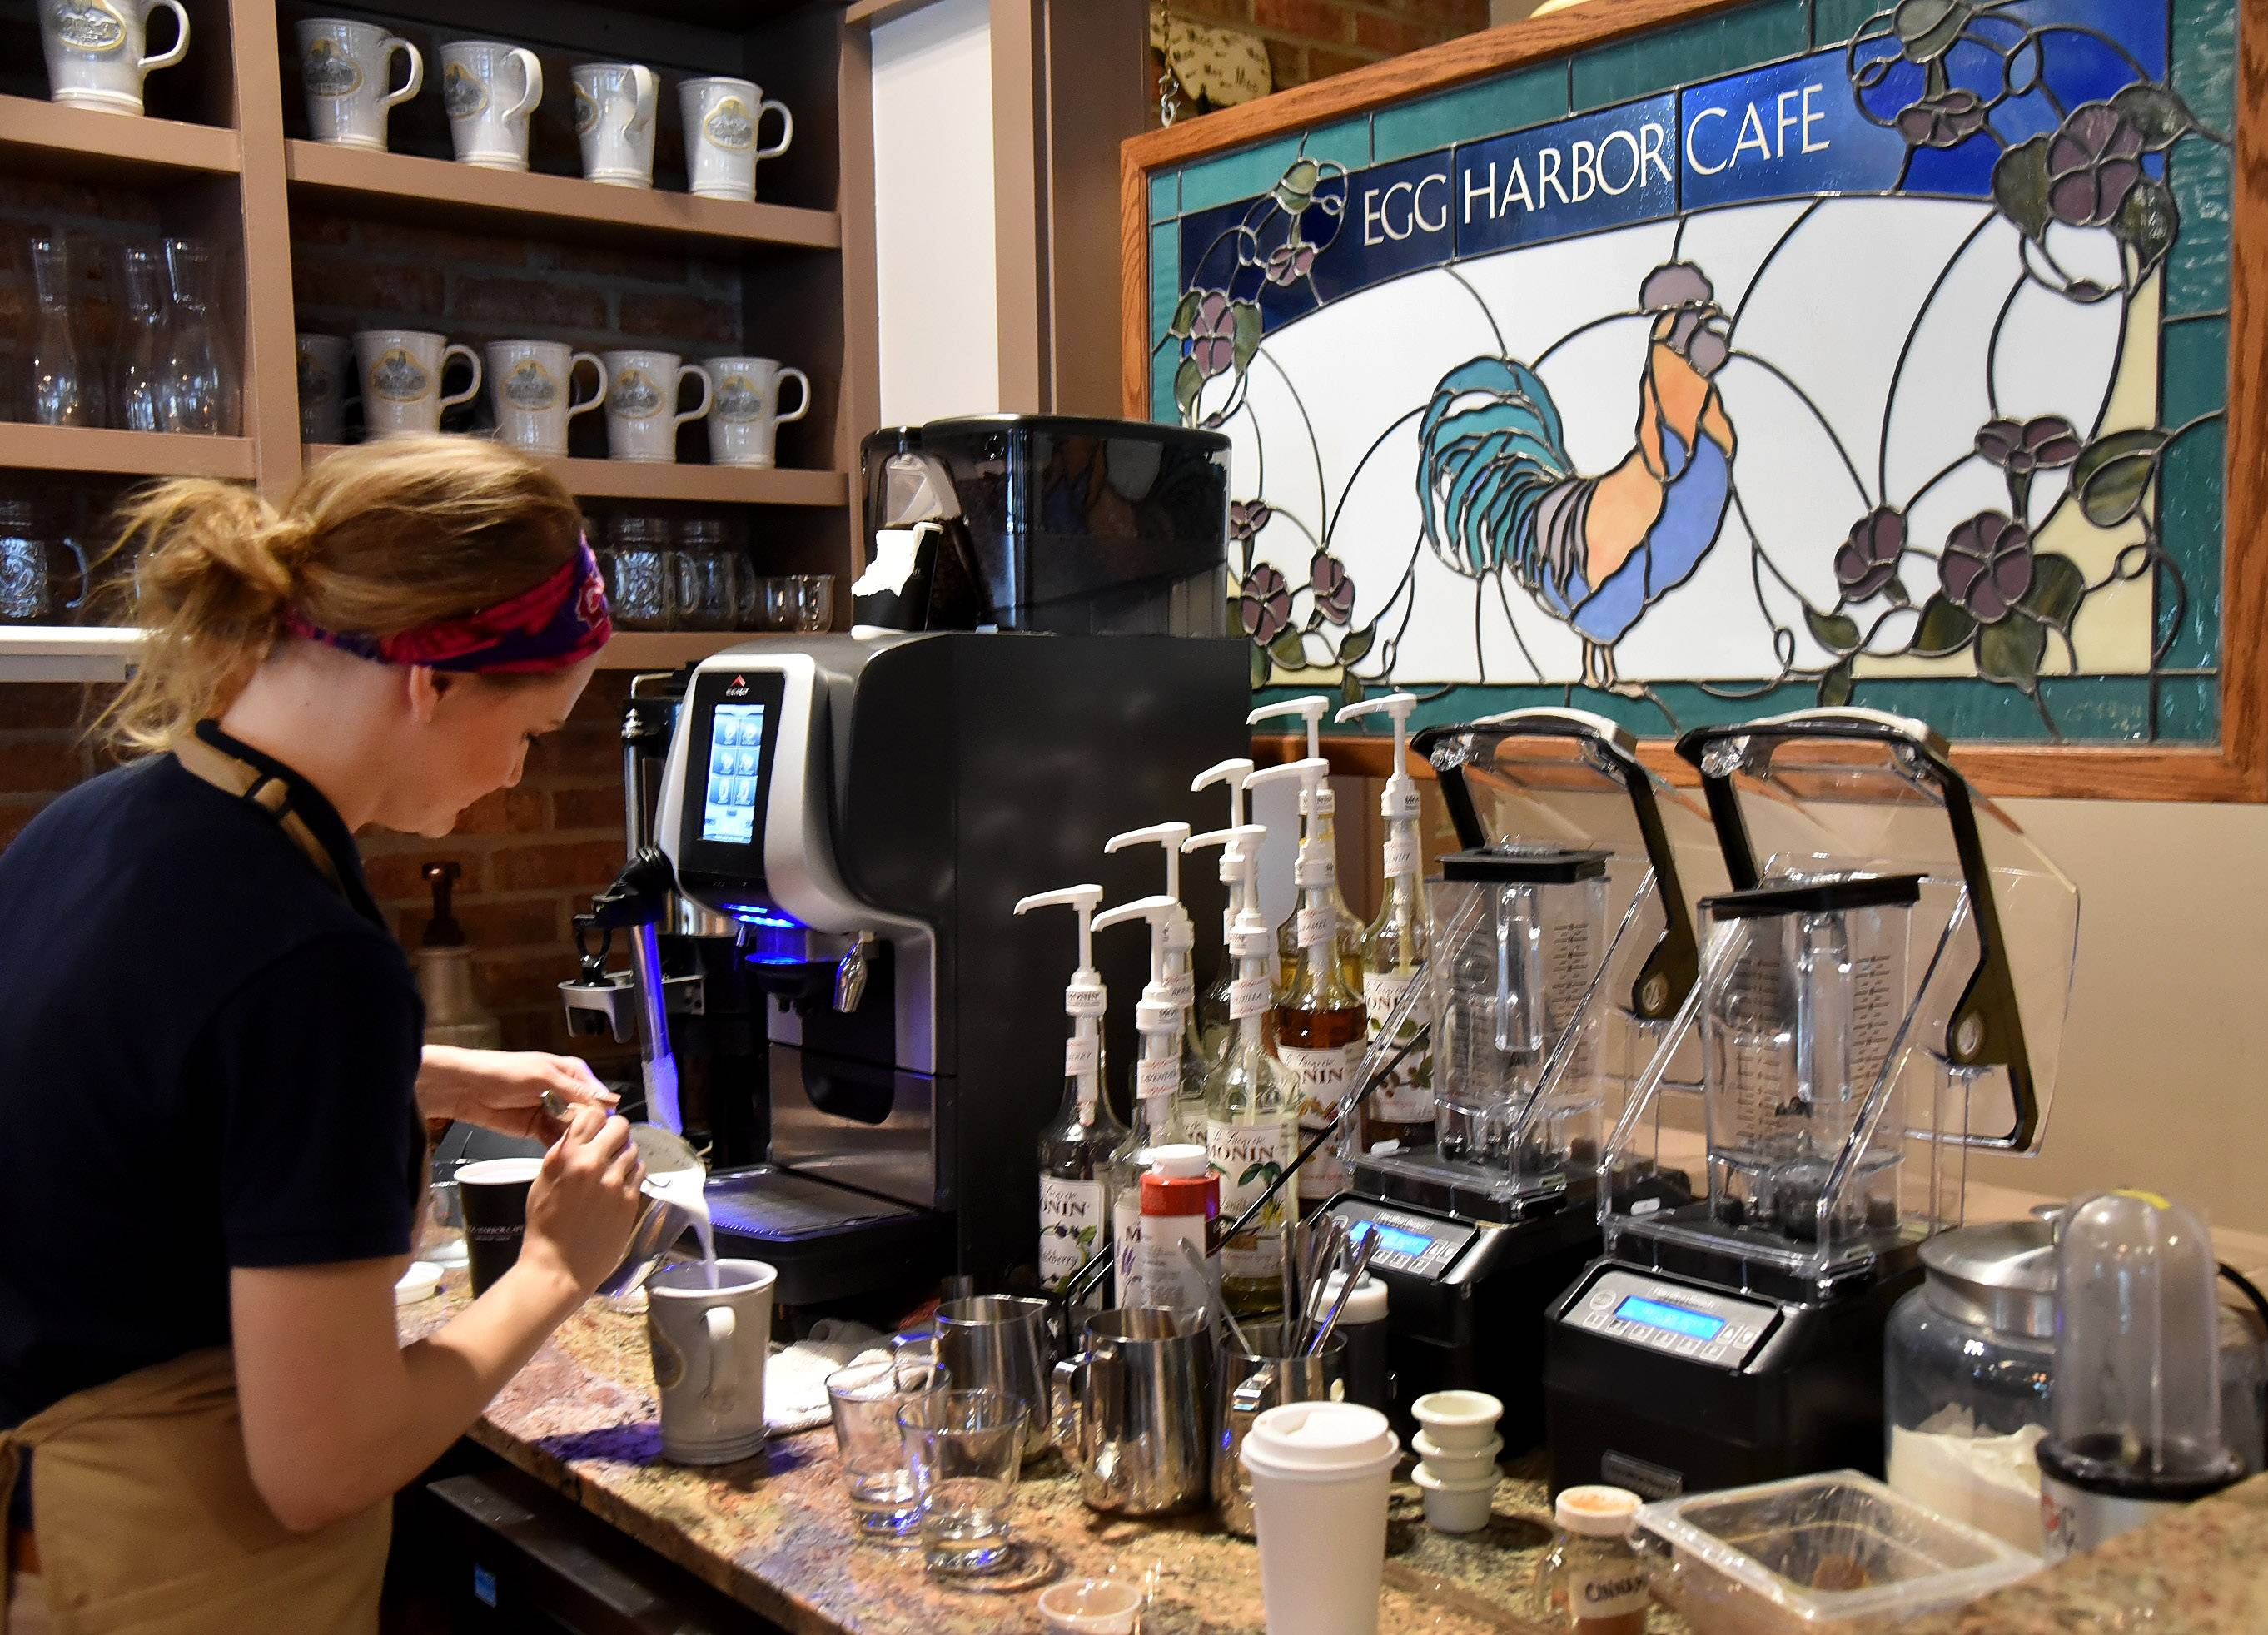 Riley Wade makes a latte at Egg Harbor Cafe's new barista bar in Arlington Heights. The bar serves coffee drinks, smoothies and other drinks to-go.